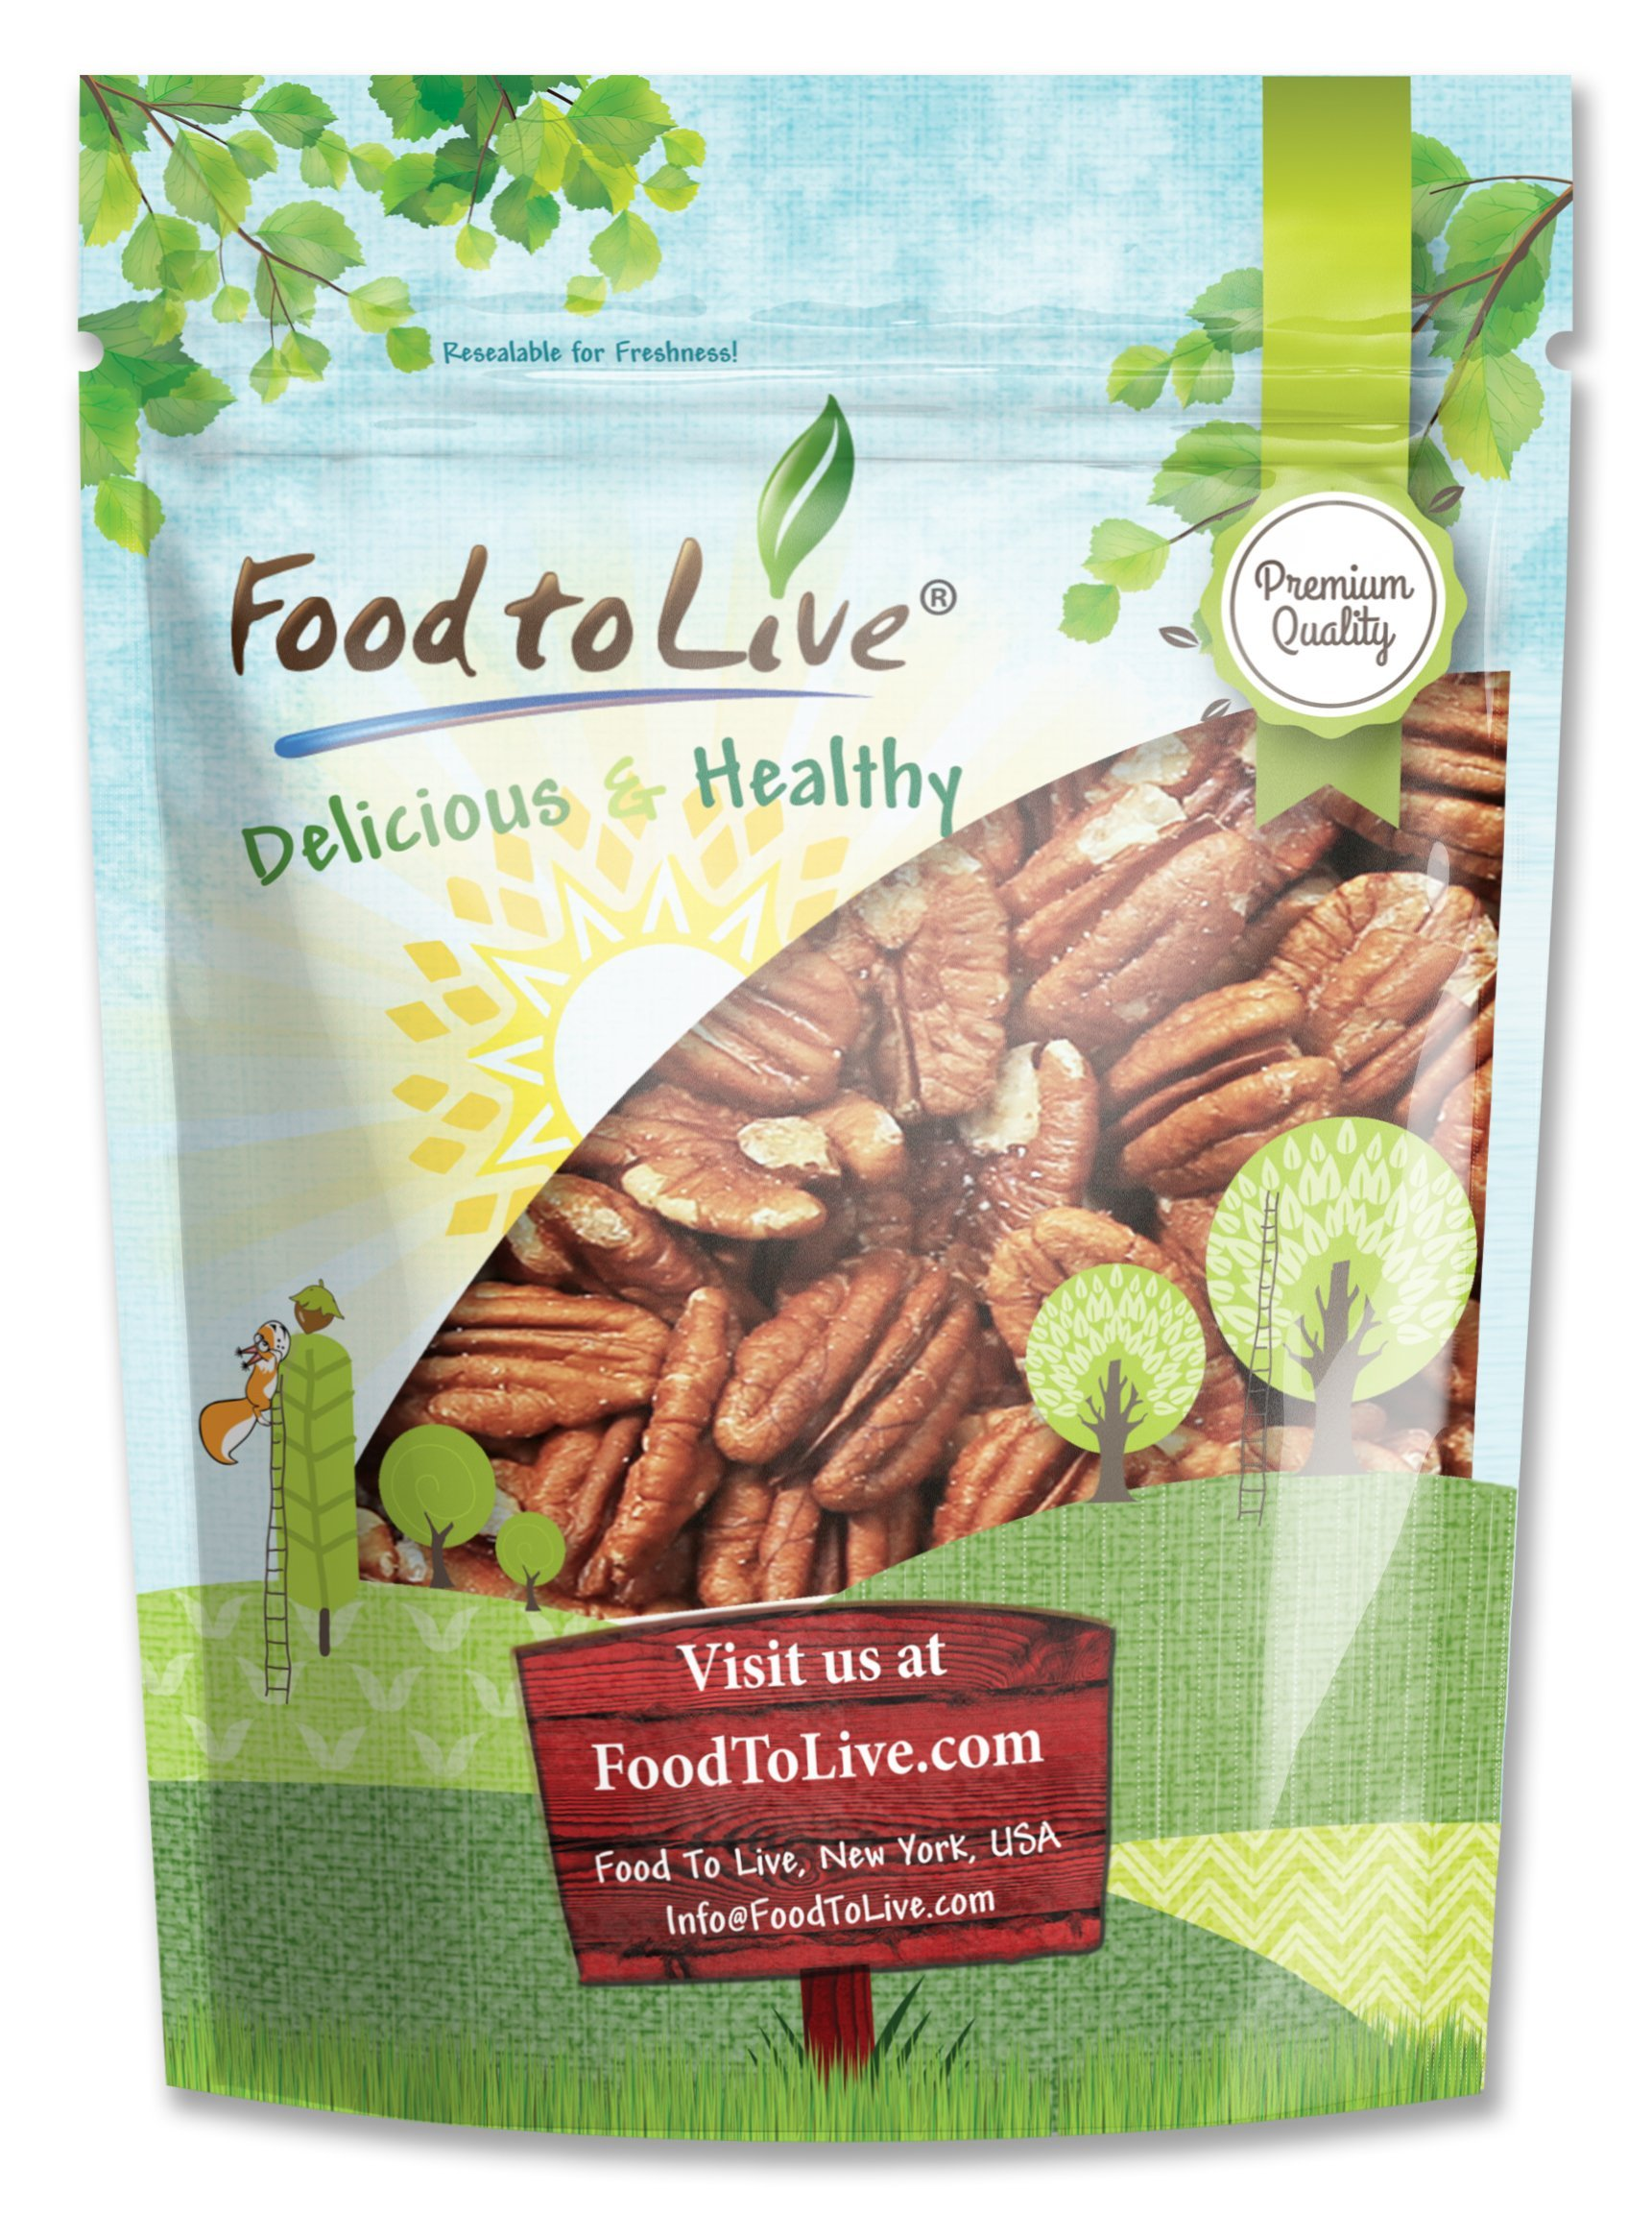 Pecans, 12 Ounces - Raw, No Shell, Kosher by Food to Live